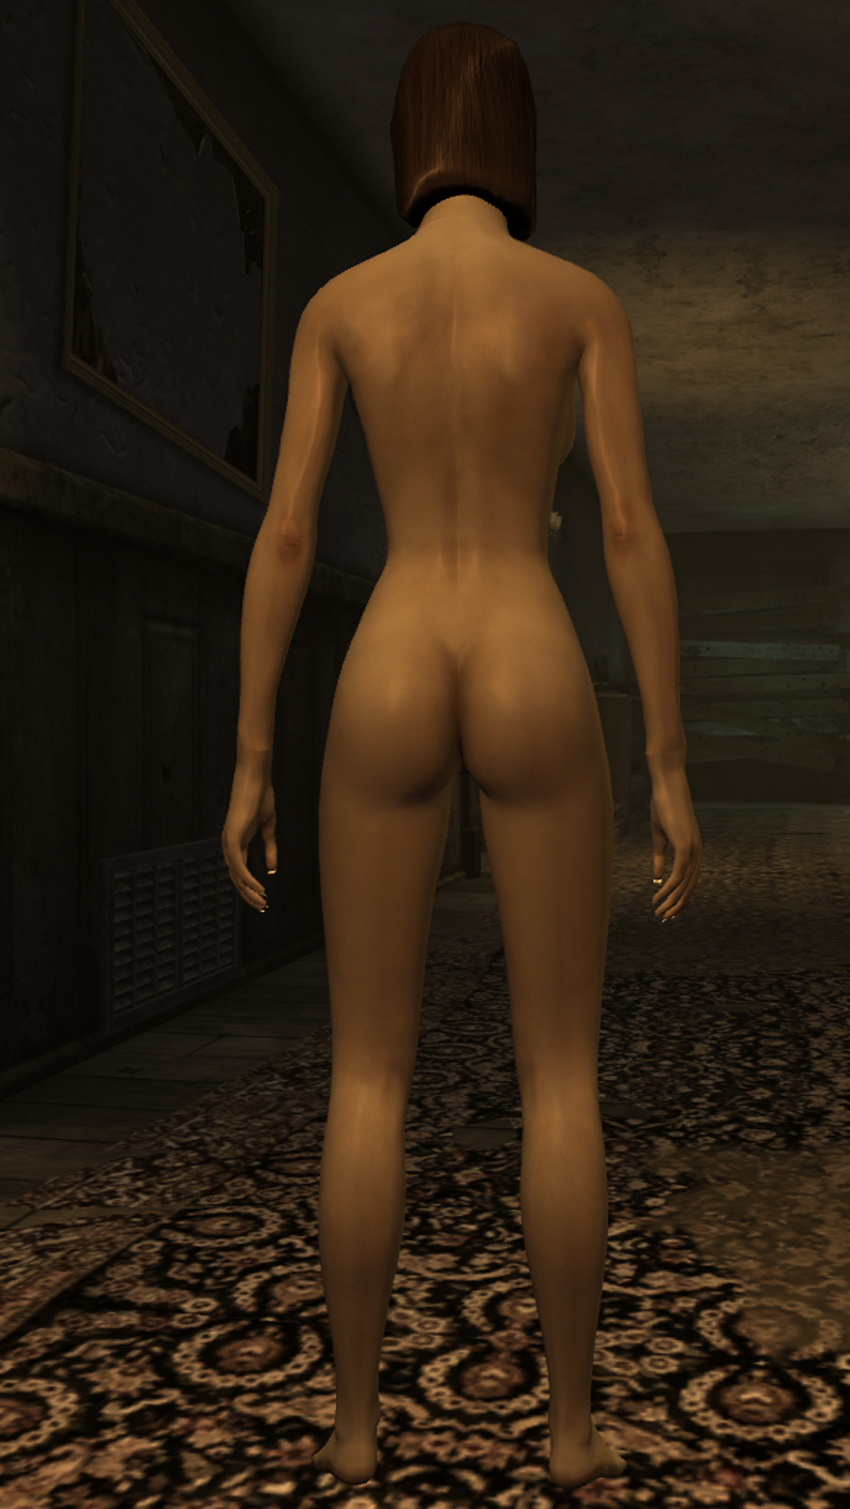 new garret fallout vegas james Harley quinn and catwoman nude